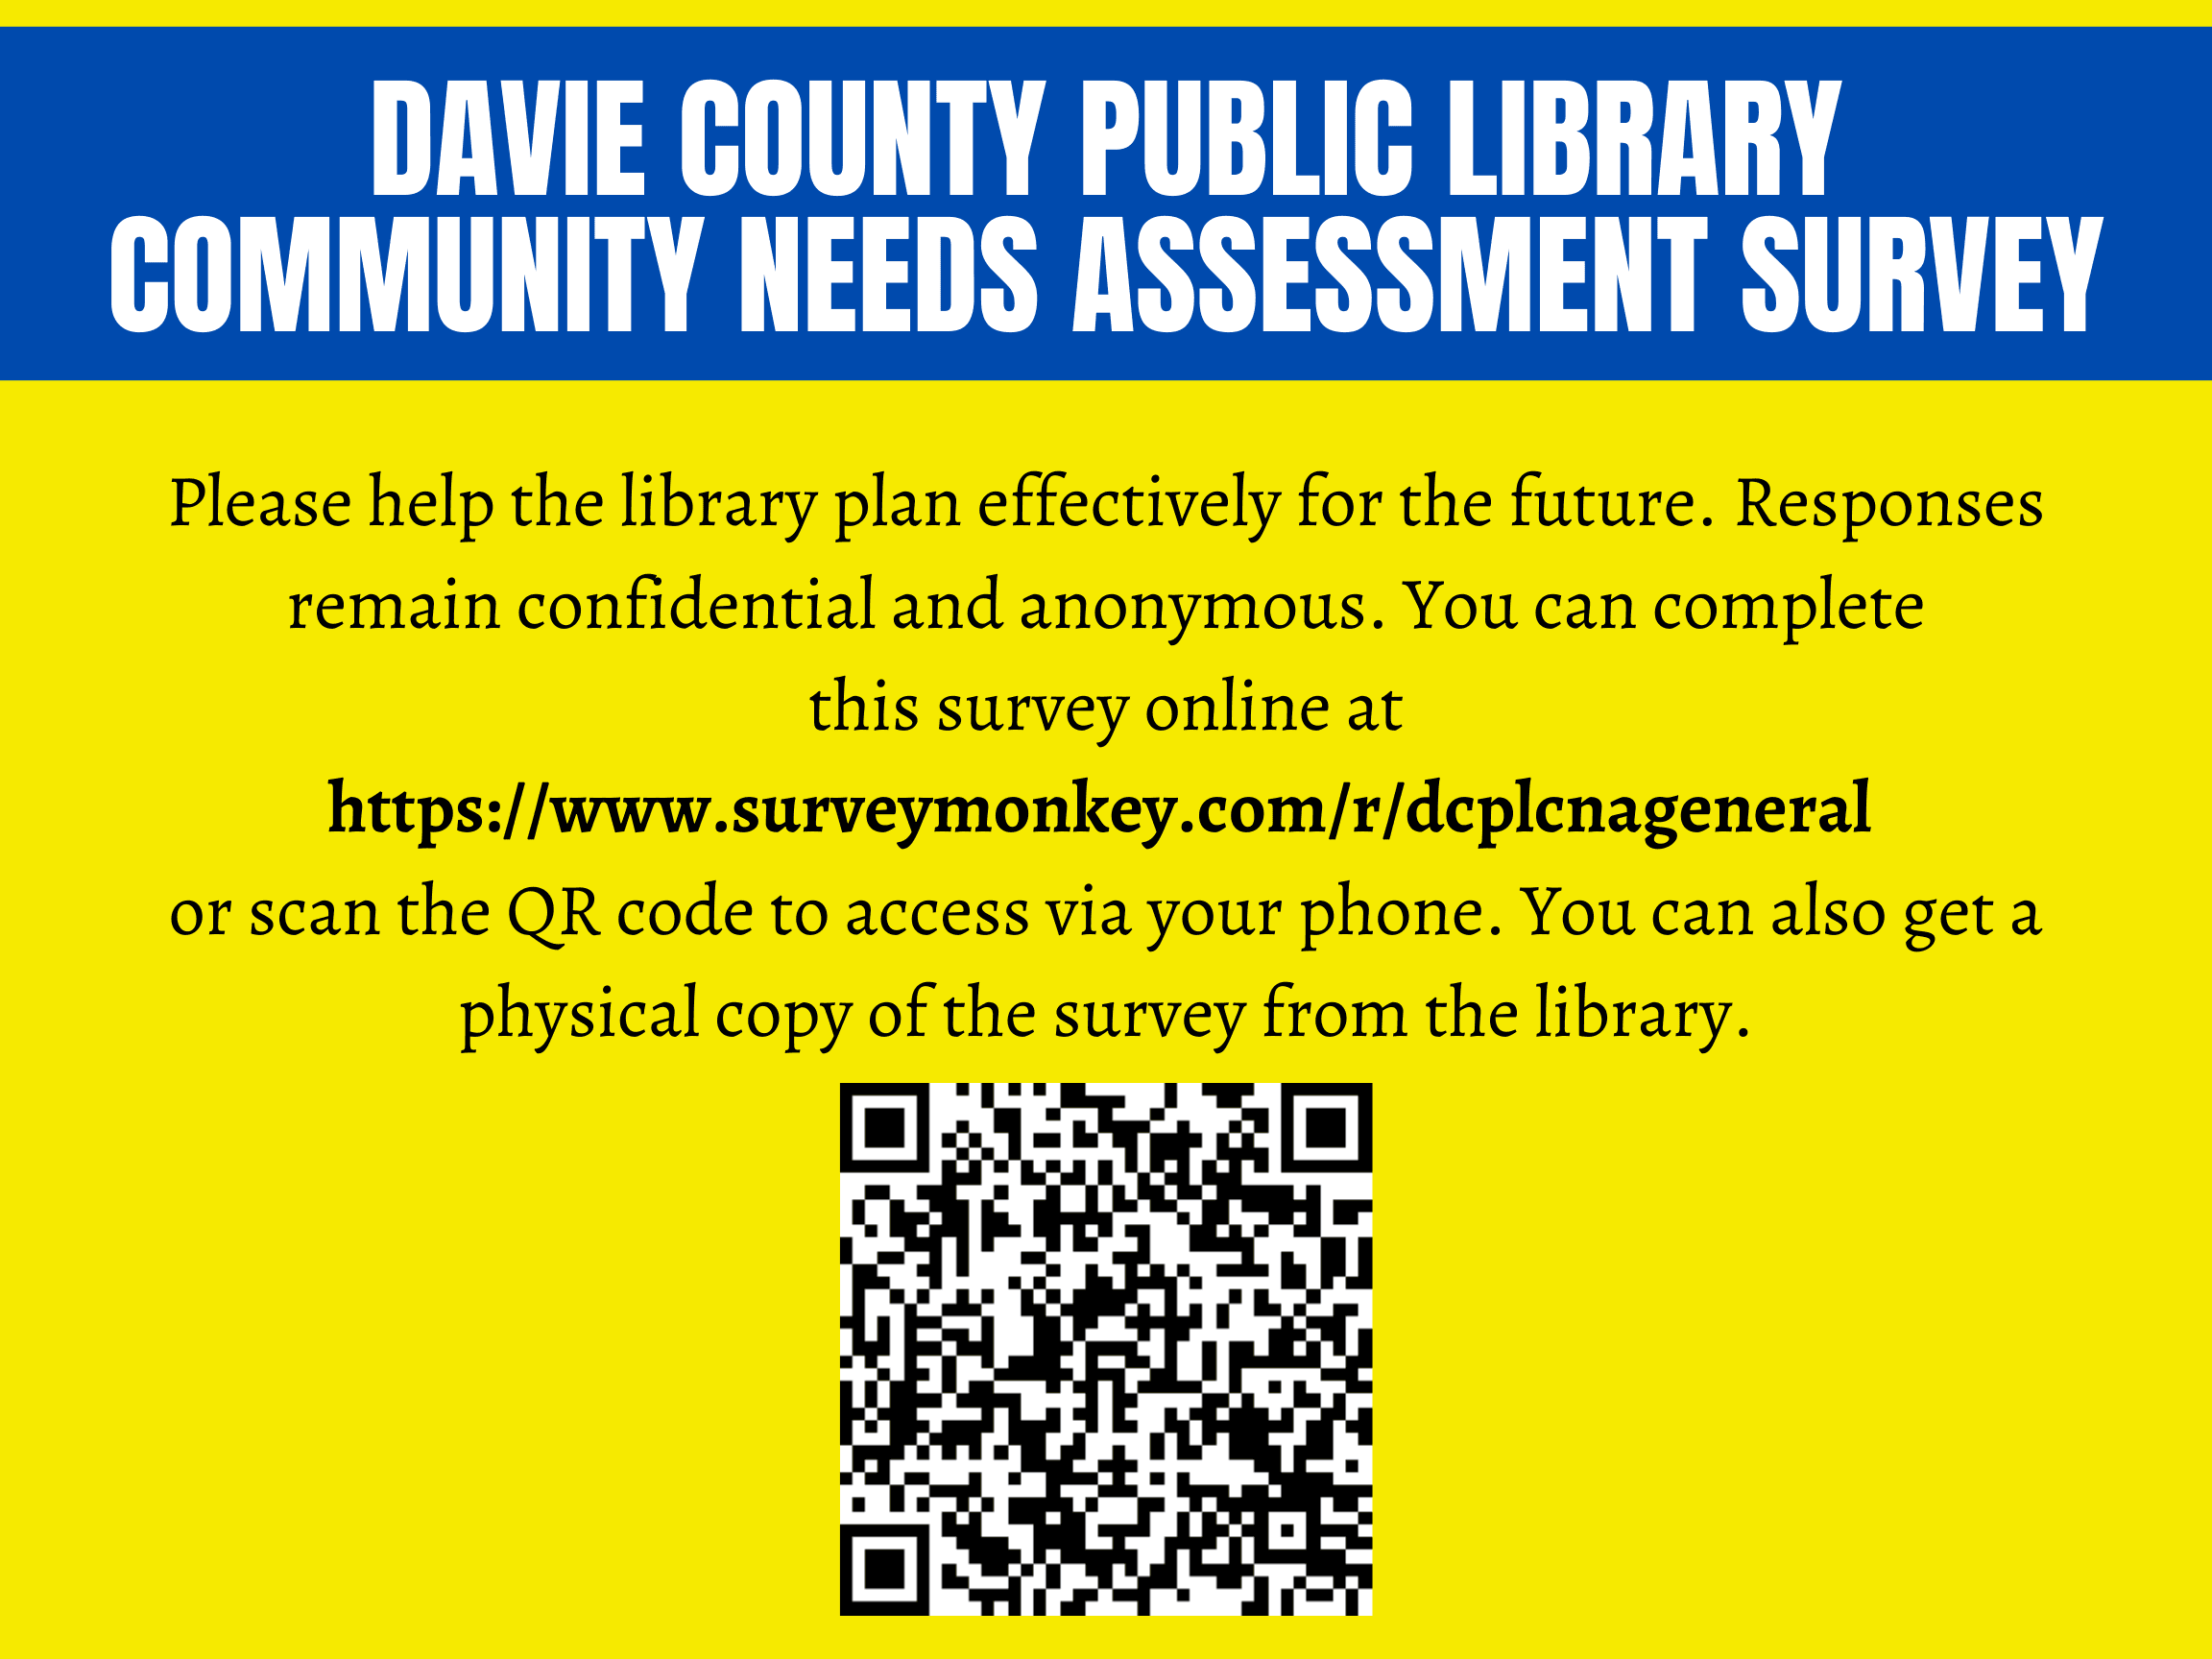 DCPL Community needs assessment social media post